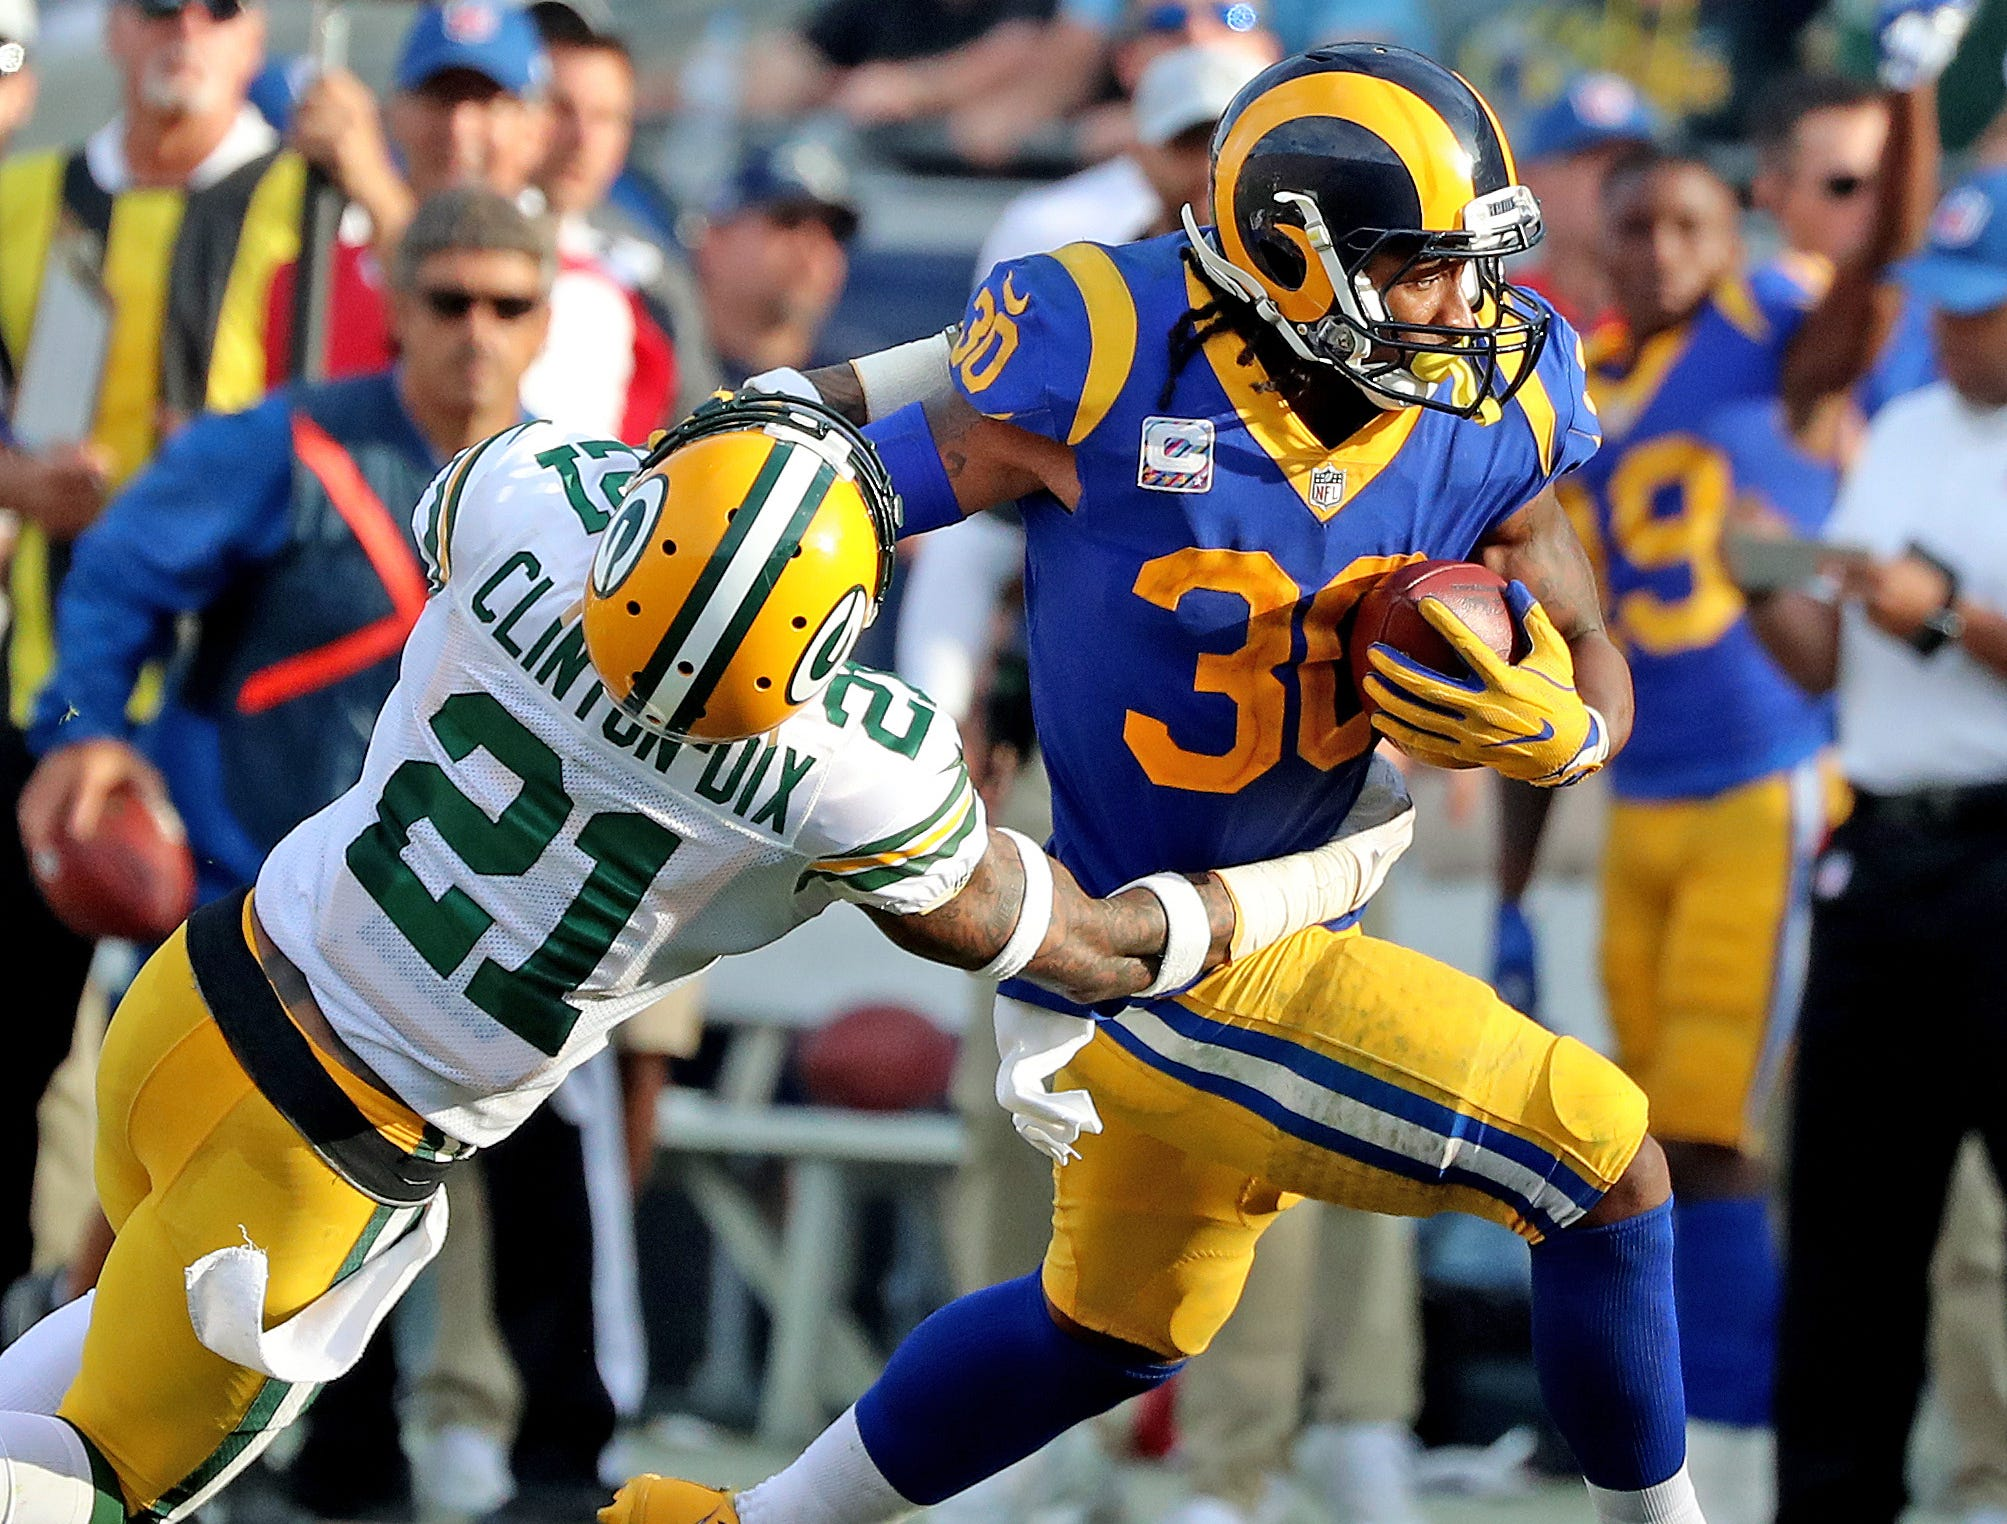 Green Bay Packers free safety Ha Ha Clinton-Dix (21) gets stiff armed and dumped by running back Todd Gurley (30) against the LA Rams Sunday, October 28, 2018 at the Memorial Coliseum in Los Angeles.